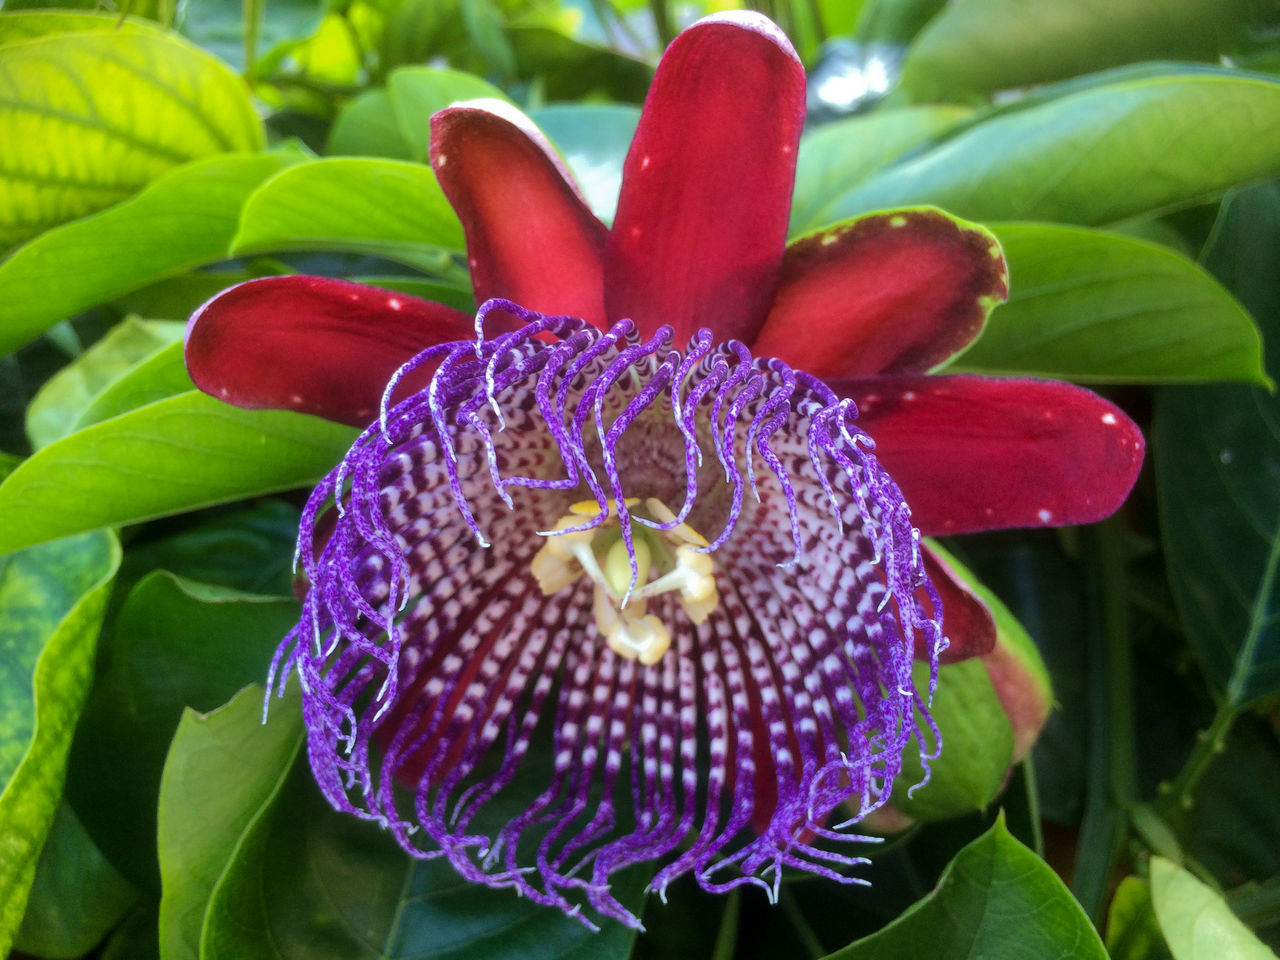 Beauty In Nature Blooming Close-up Day Flower Flower Head Fragility Freshness Growth Maroon Nature No People Outdoors Passion Flower Petal Plant Pollen